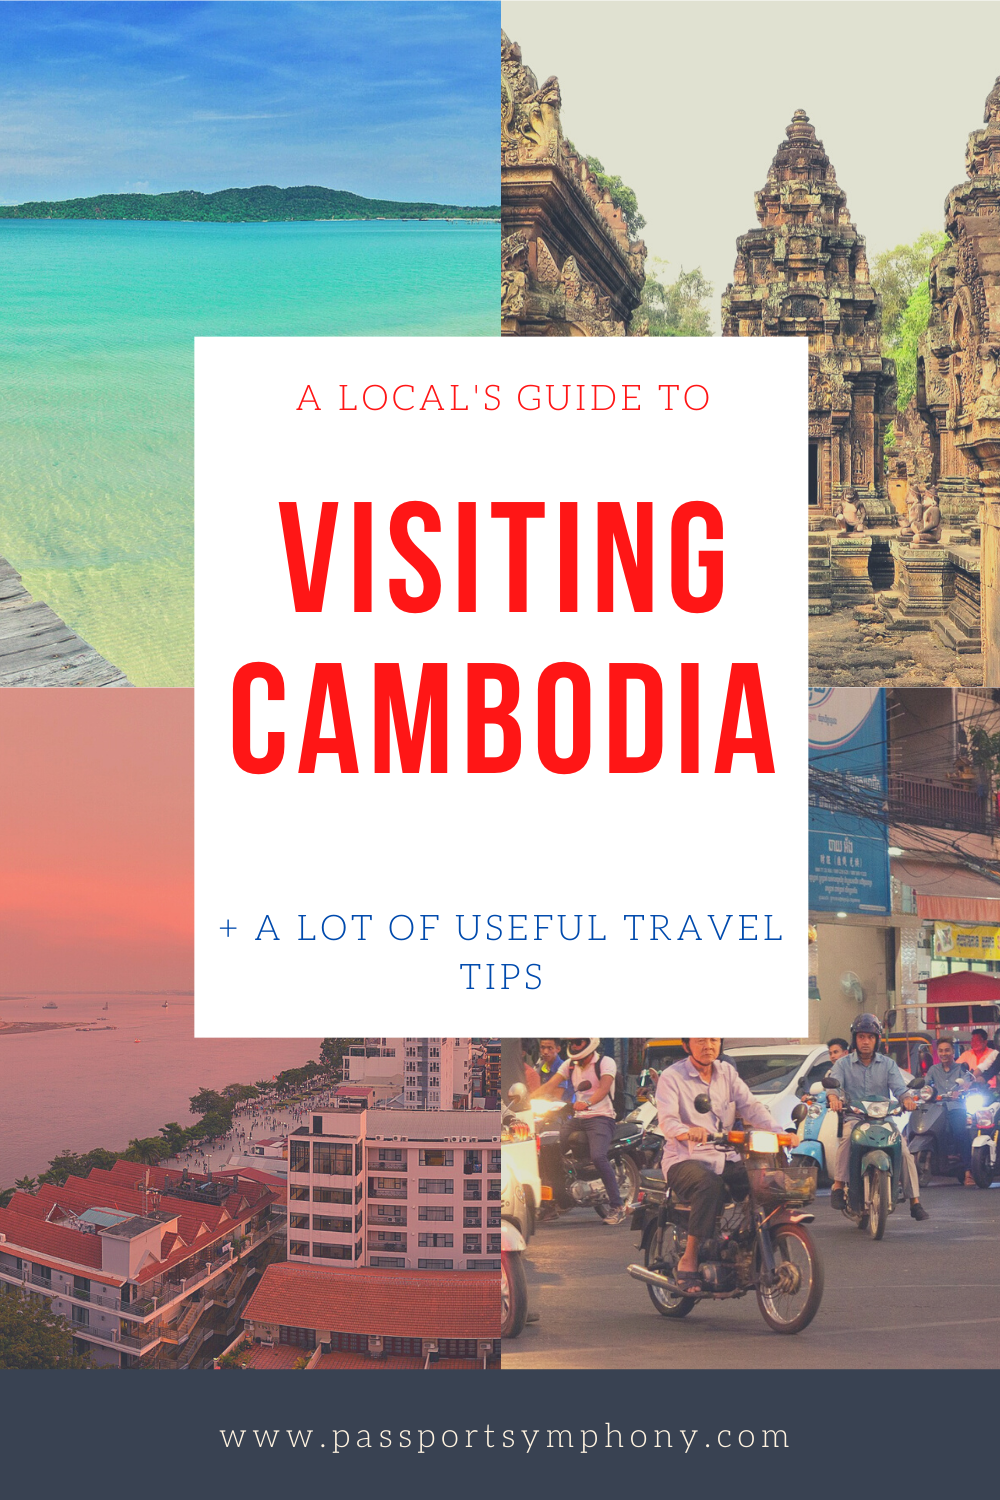 Are you planning to visit Cambodia? This Cambodia travel guide will show you all the local attractions, things to do in Cambodia, restaurants, landmarks, places to stay, and a lot of other useful tips and tricks. Start planning your Cambodia itinerary and add a few places to your Cambodia bucket list!